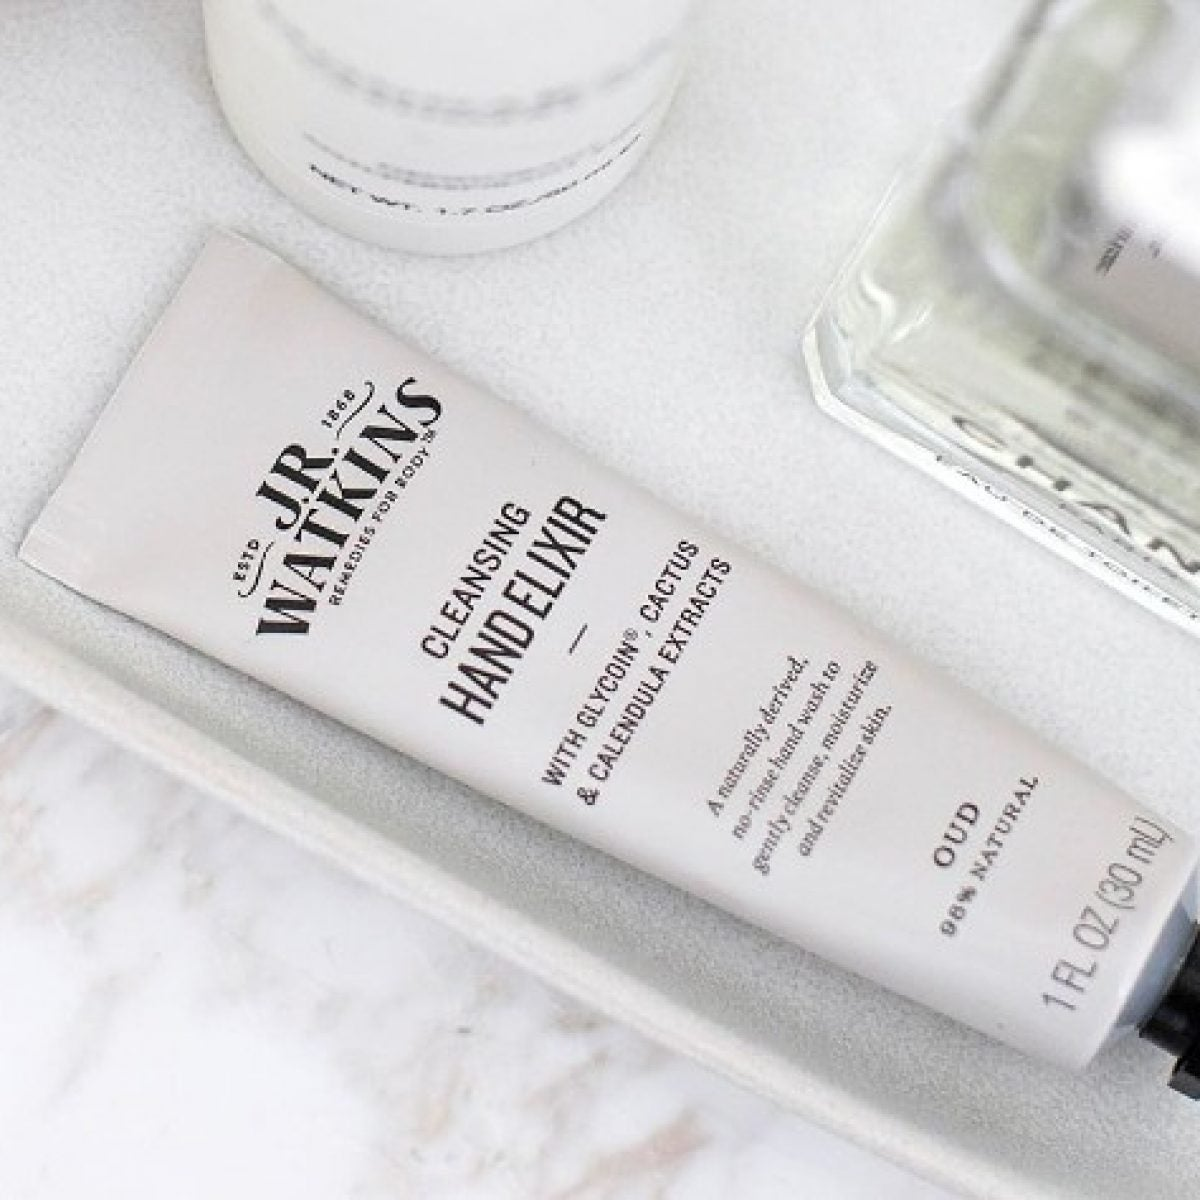 This Beauty Product Is An Unexpected Pandemic Wedding Savior